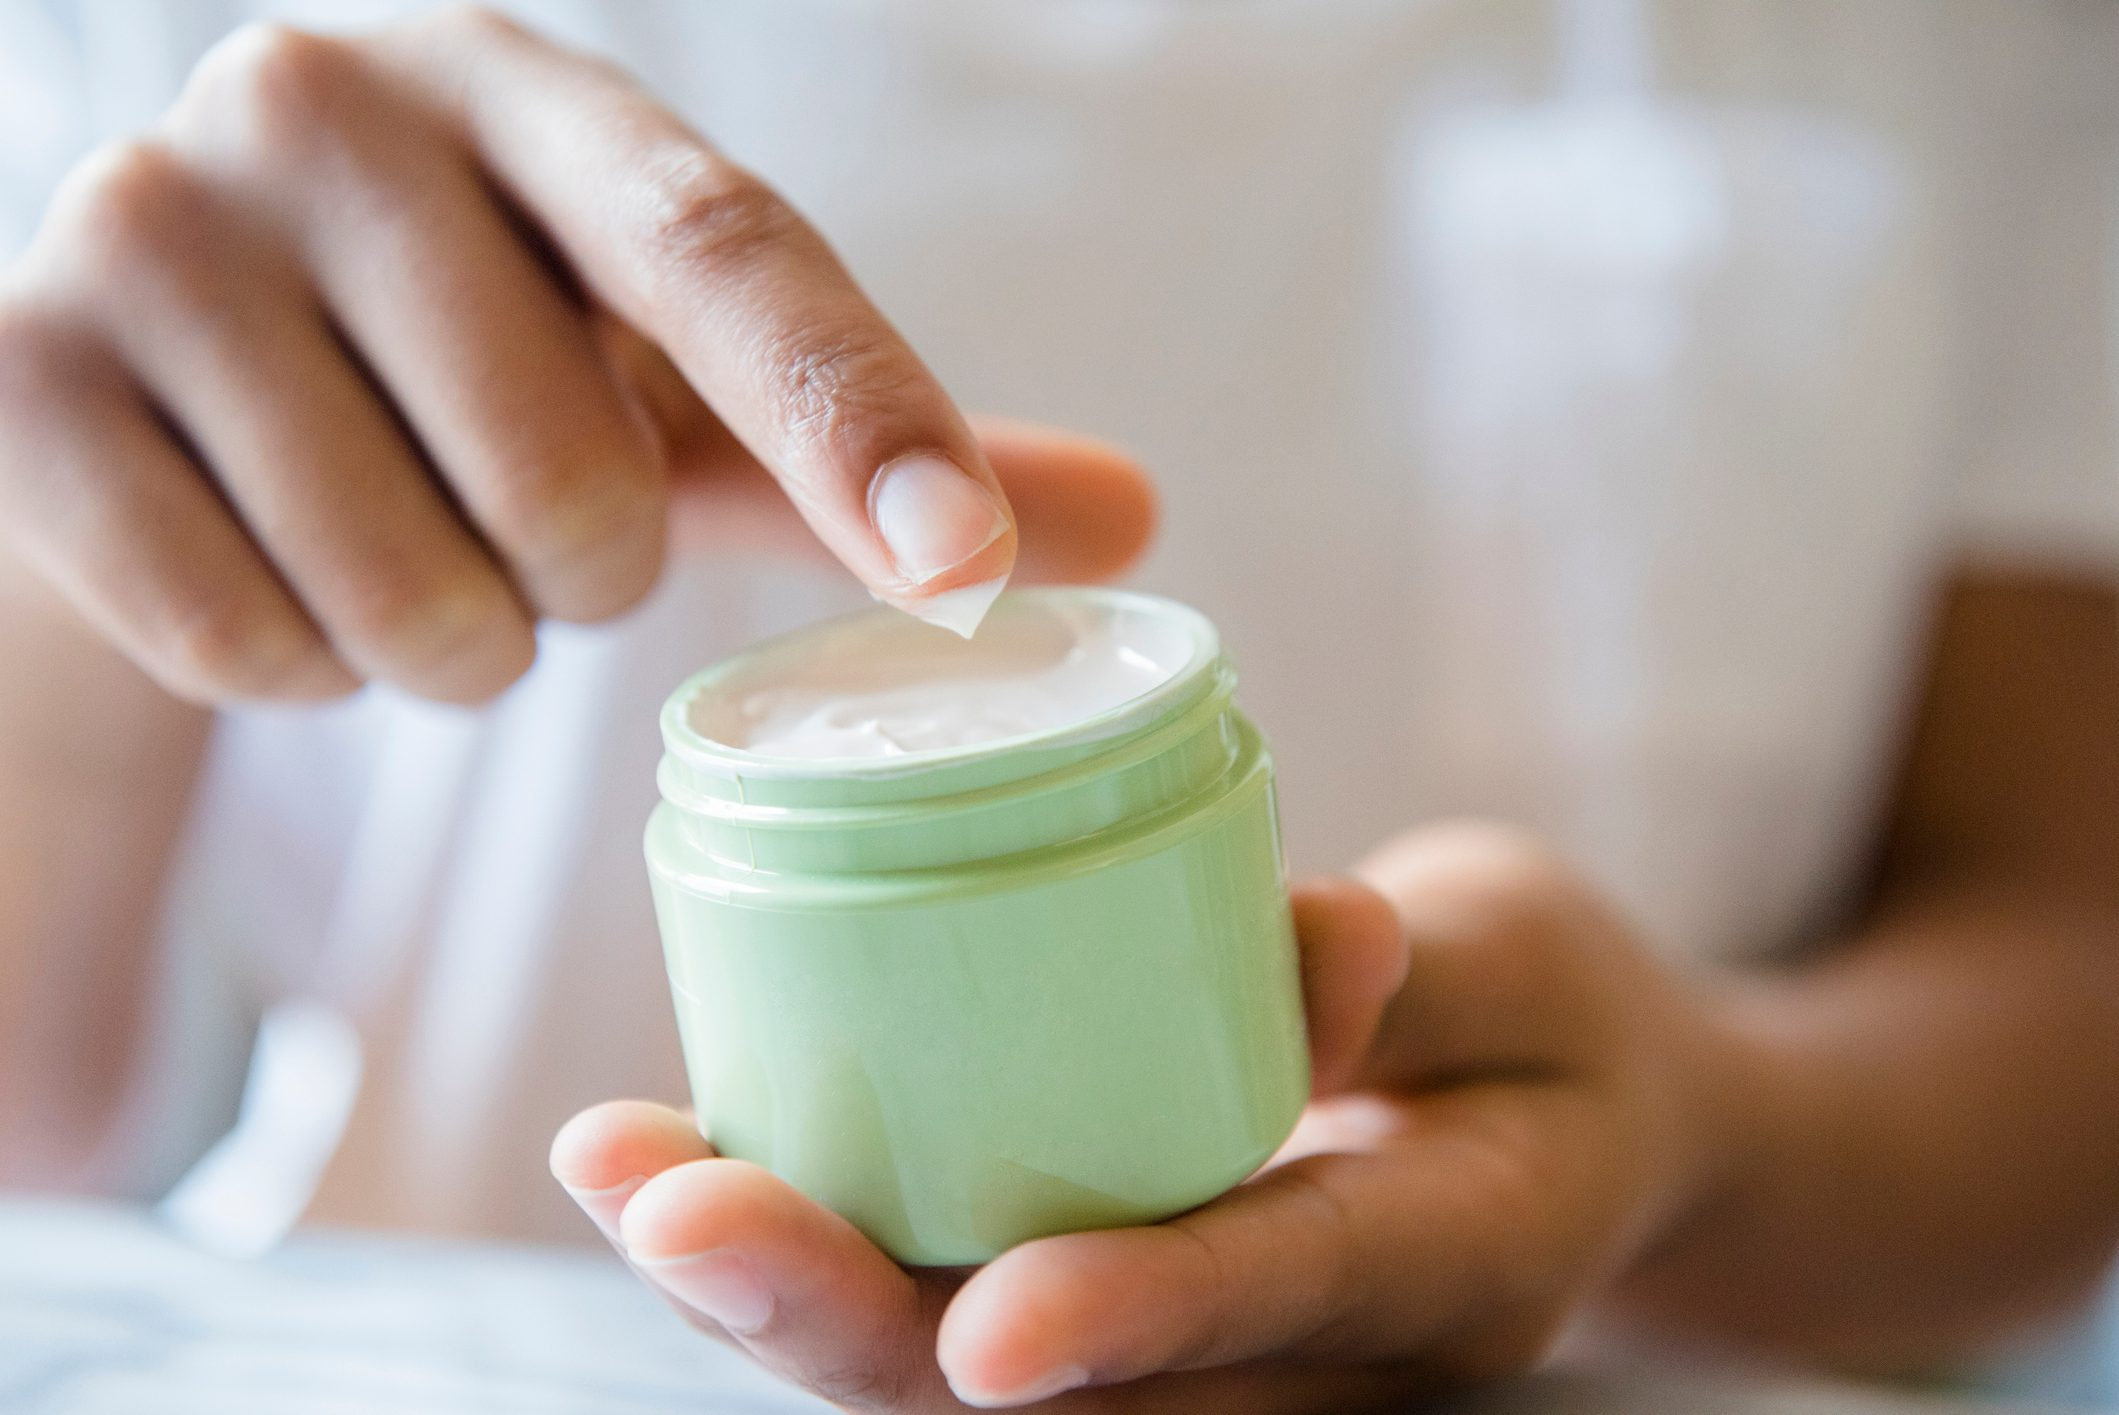 Close up of African American woman dipping finger in lotion jar